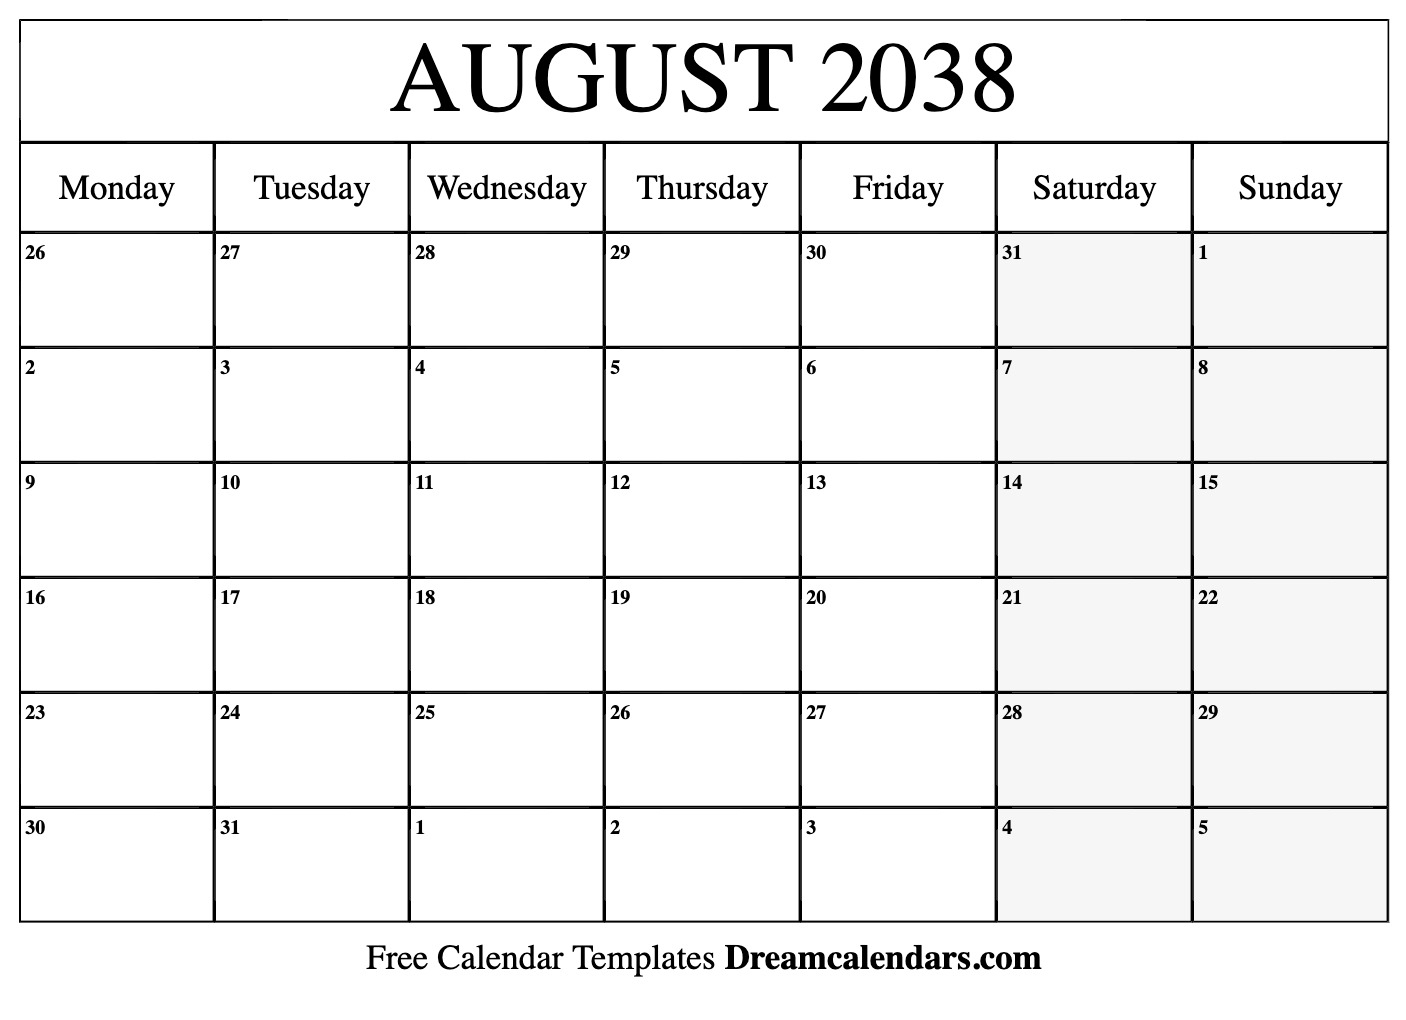 Printable August 2038 Calendar Regarding Printable Sunrise Sunset Times 2021